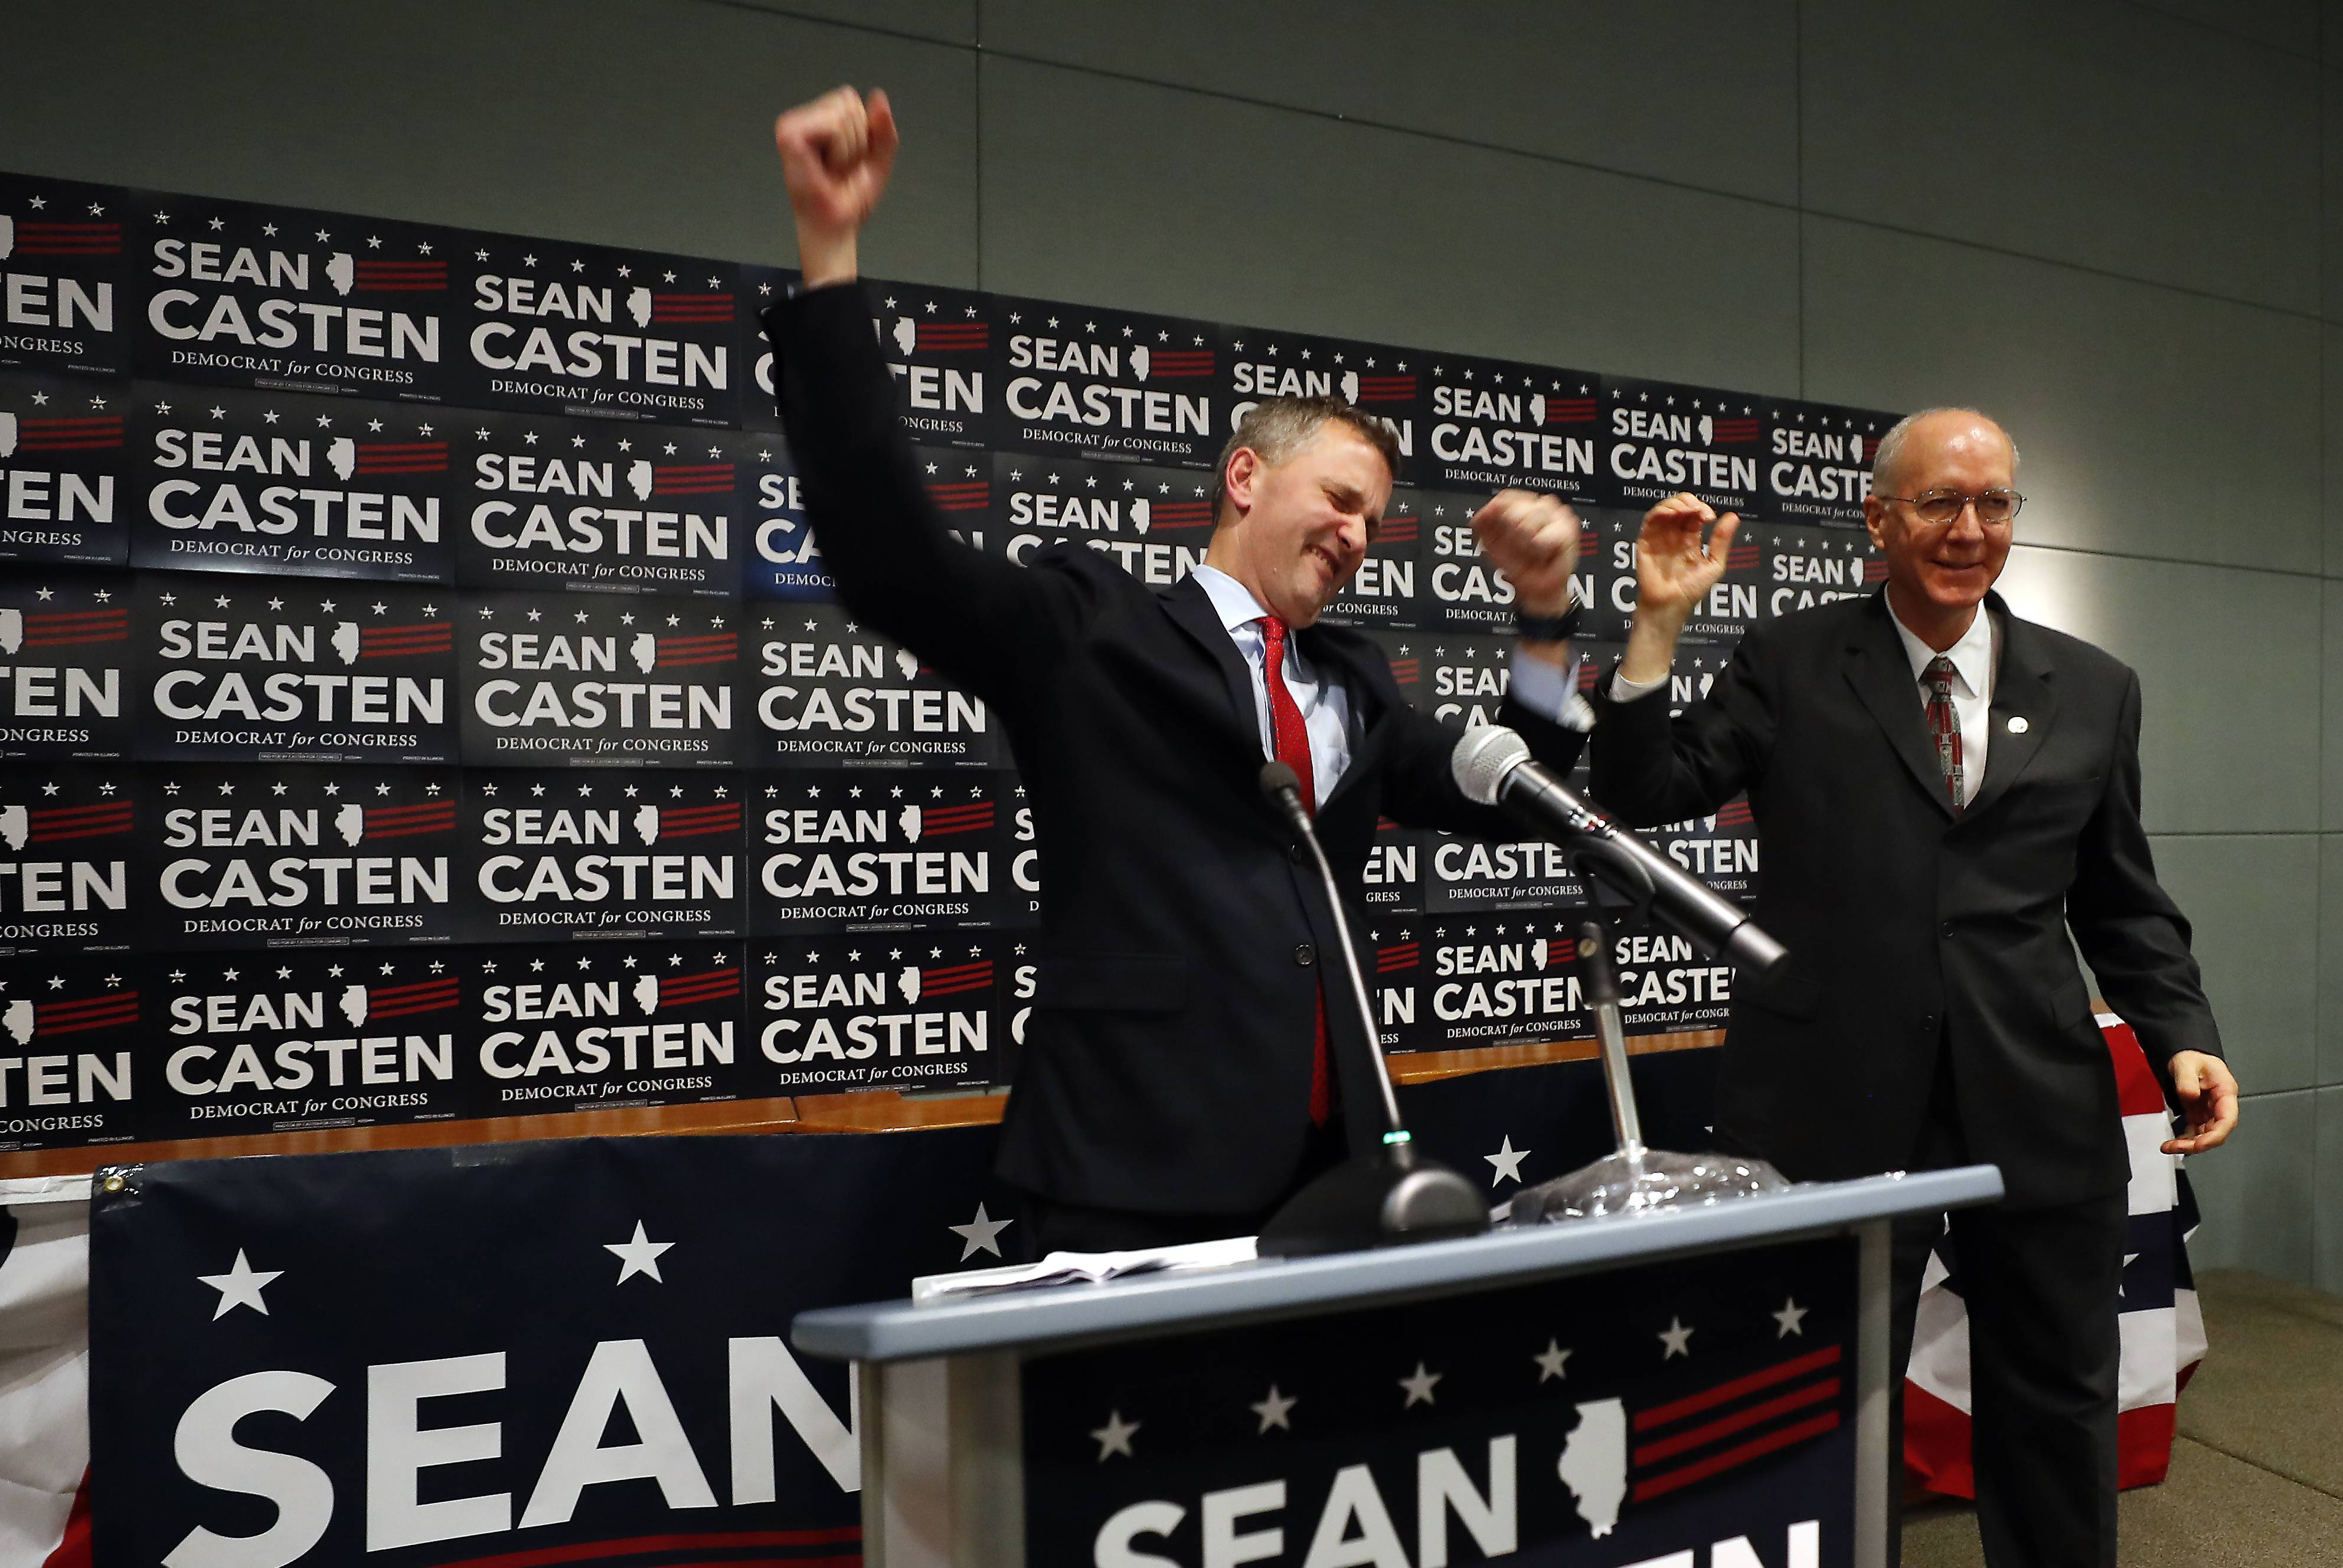 Casten unseats Roskam in 6th District race